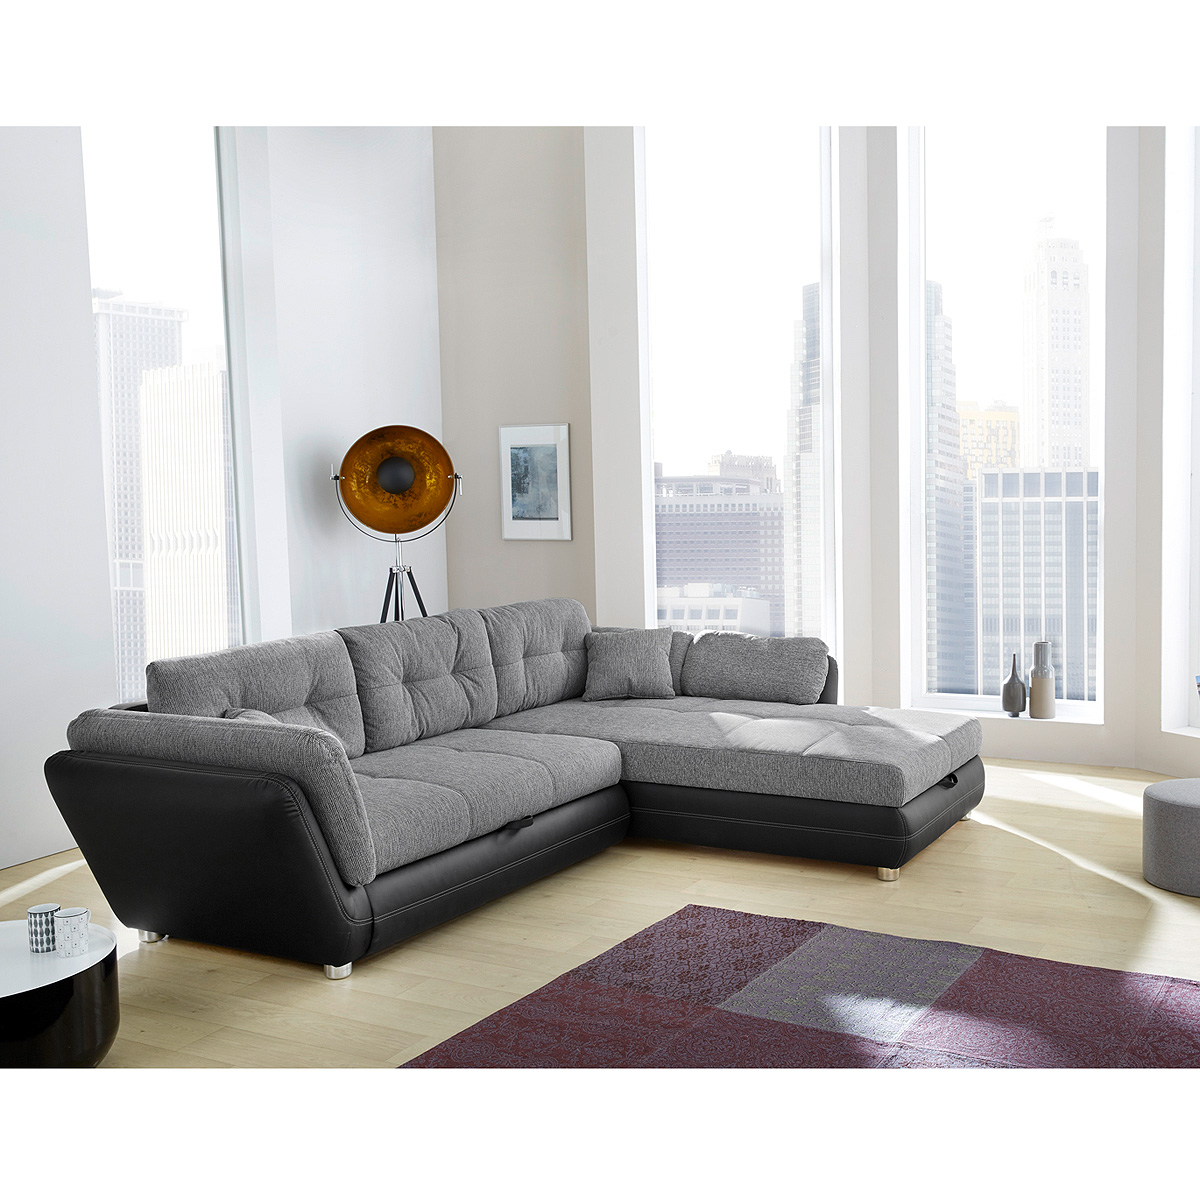 wohnlandschaft java sofa ecksofa in schwarz und grau mit bettfunktion eur 819 95 picclick de. Black Bedroom Furniture Sets. Home Design Ideas